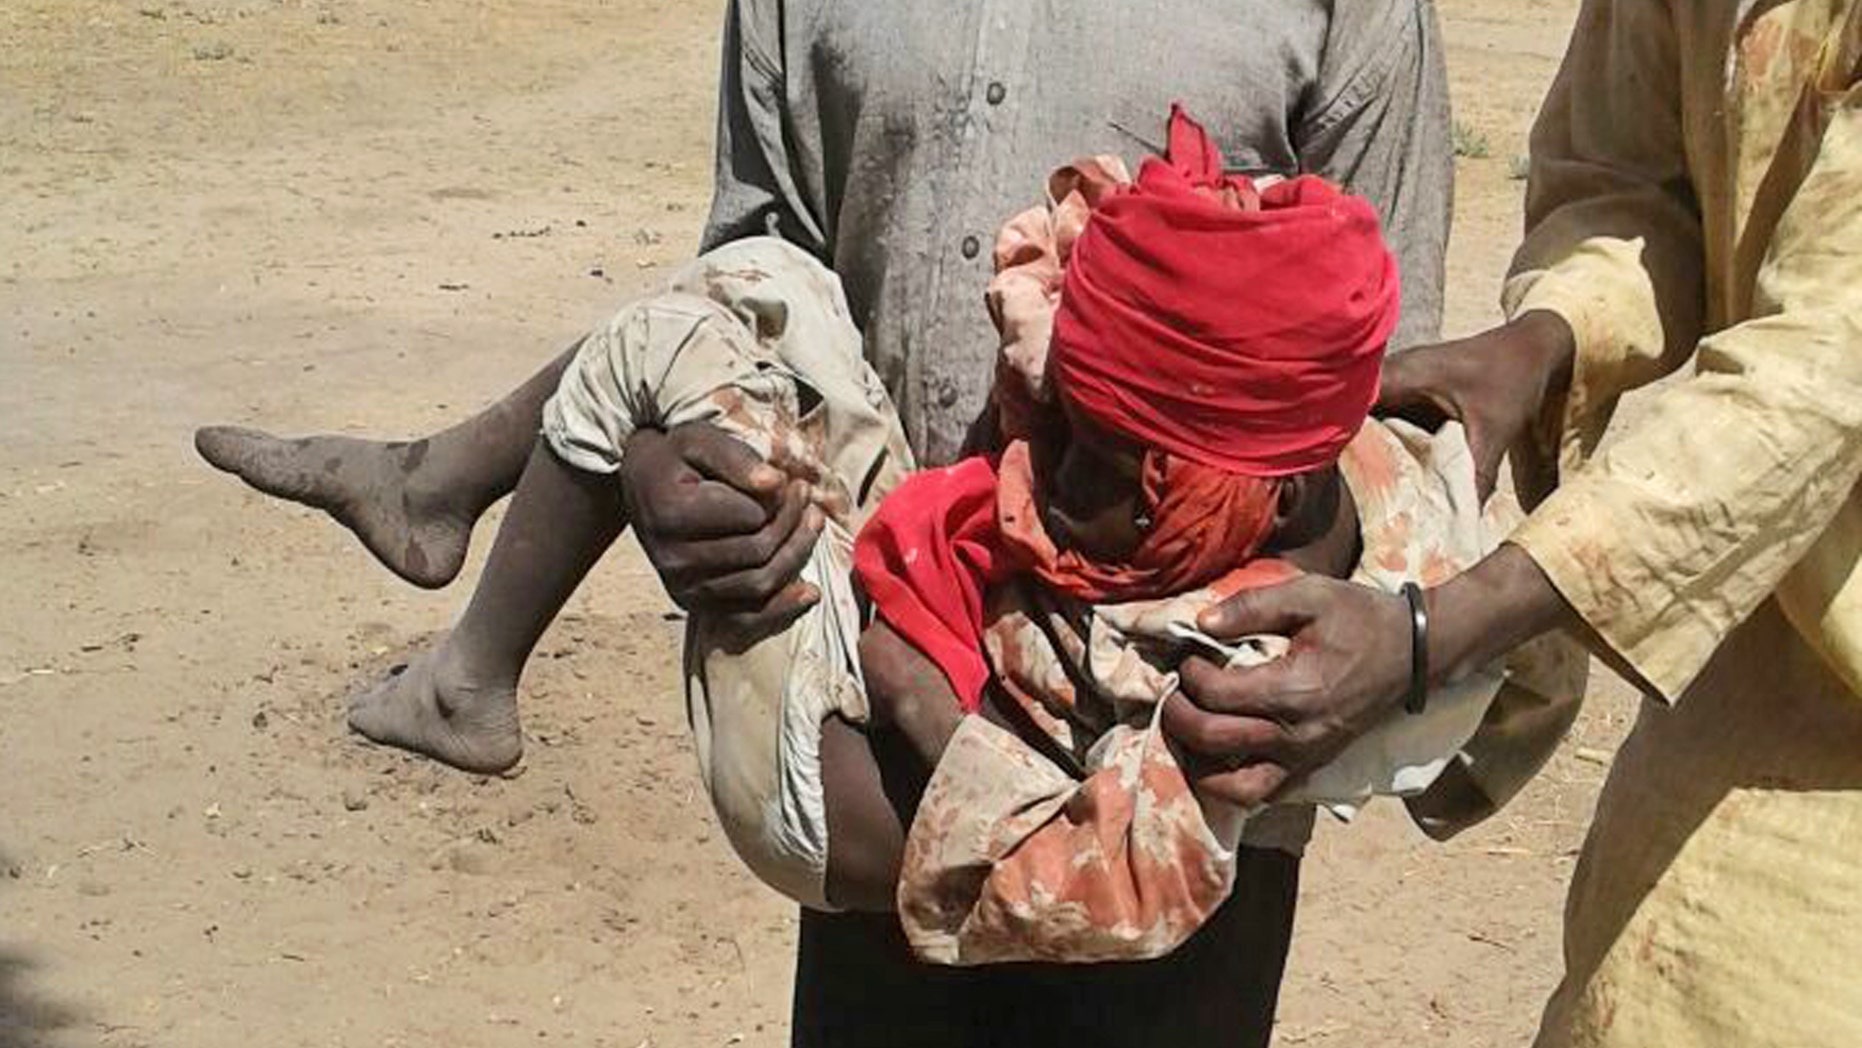 A man carries an injured child after the airstrike.